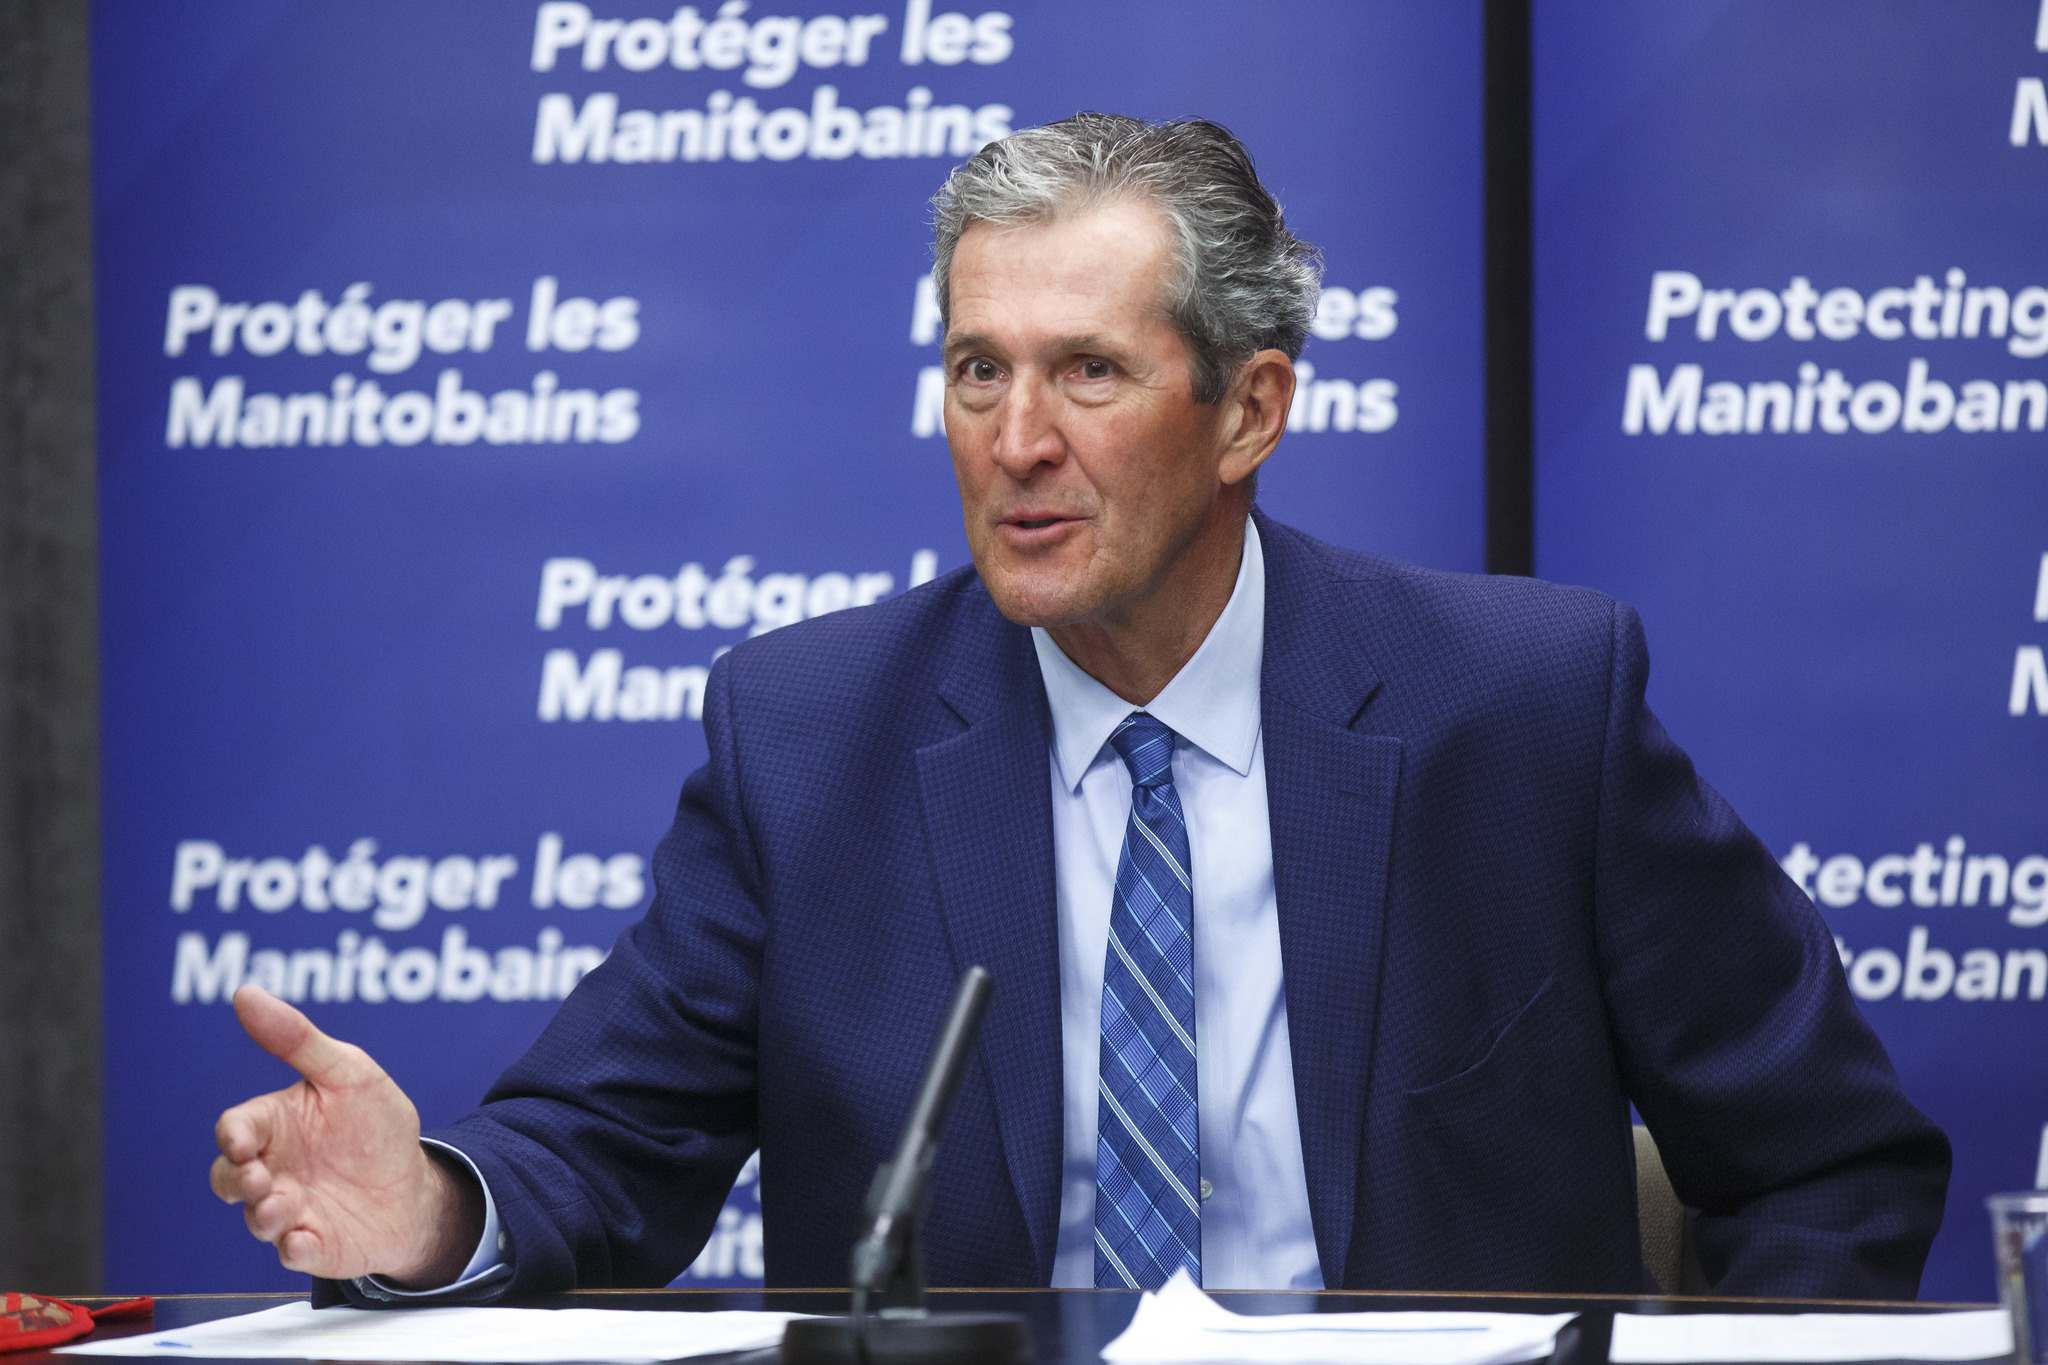 Premier Brian Pallister announces that his government is launching a new Manitoba Pandemic Sick Leave program that will provide direct financial assistance to help fill gaps between federal programming and current provincial employment standards for paid sick leave, during a press conference at the Manitoba Legislative building Friday morning. (Winnipeg Free Press)</p></p></p>